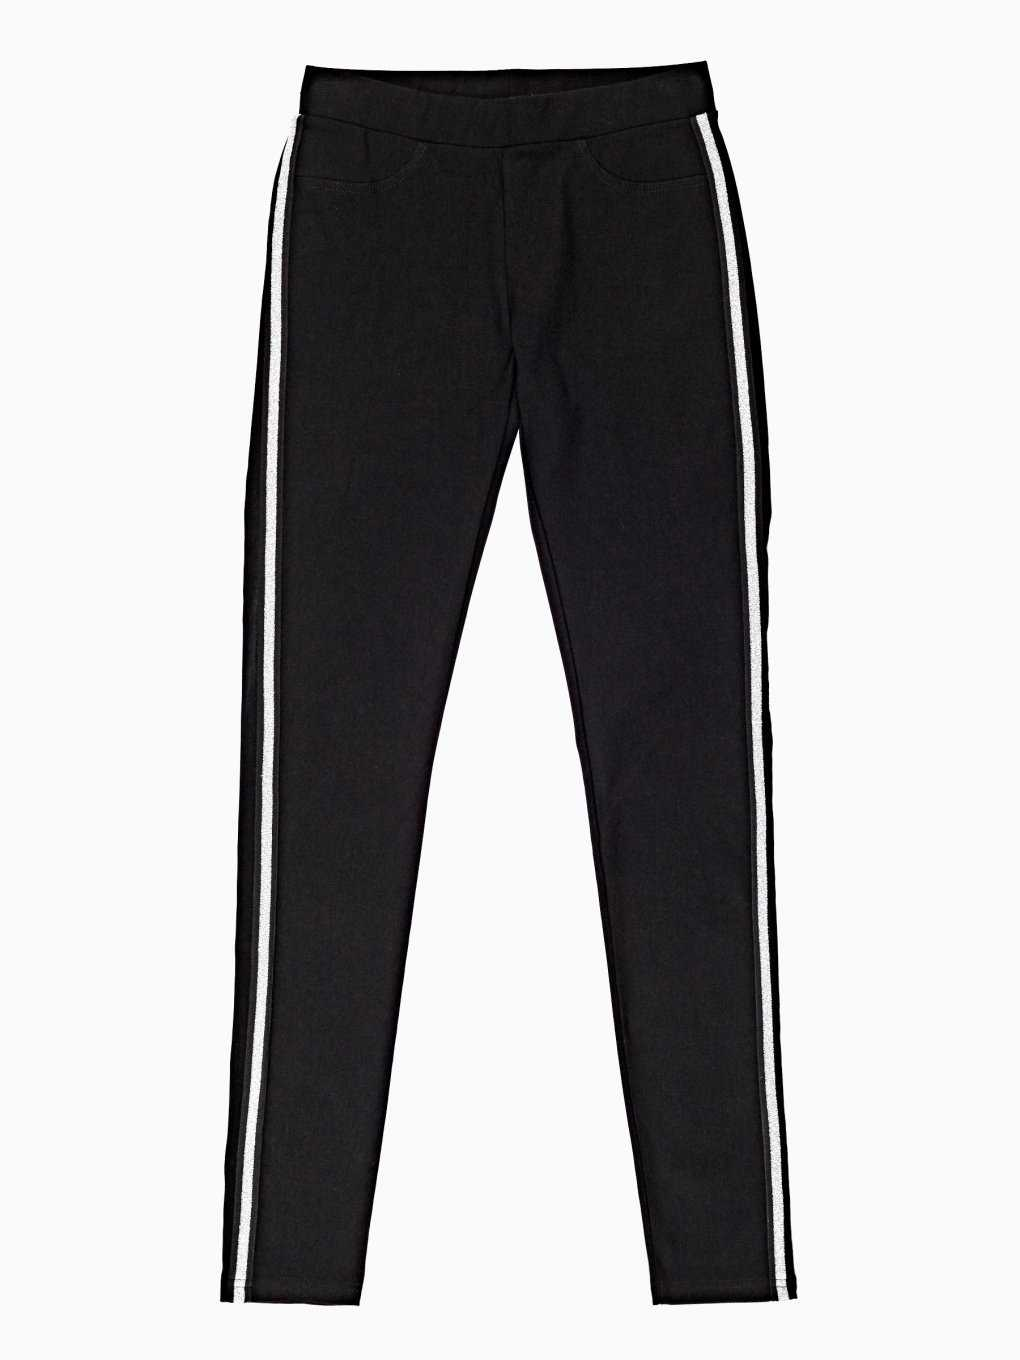 SLIM KNITTED TROUSERS WITH METALLIC SIDE TAPE